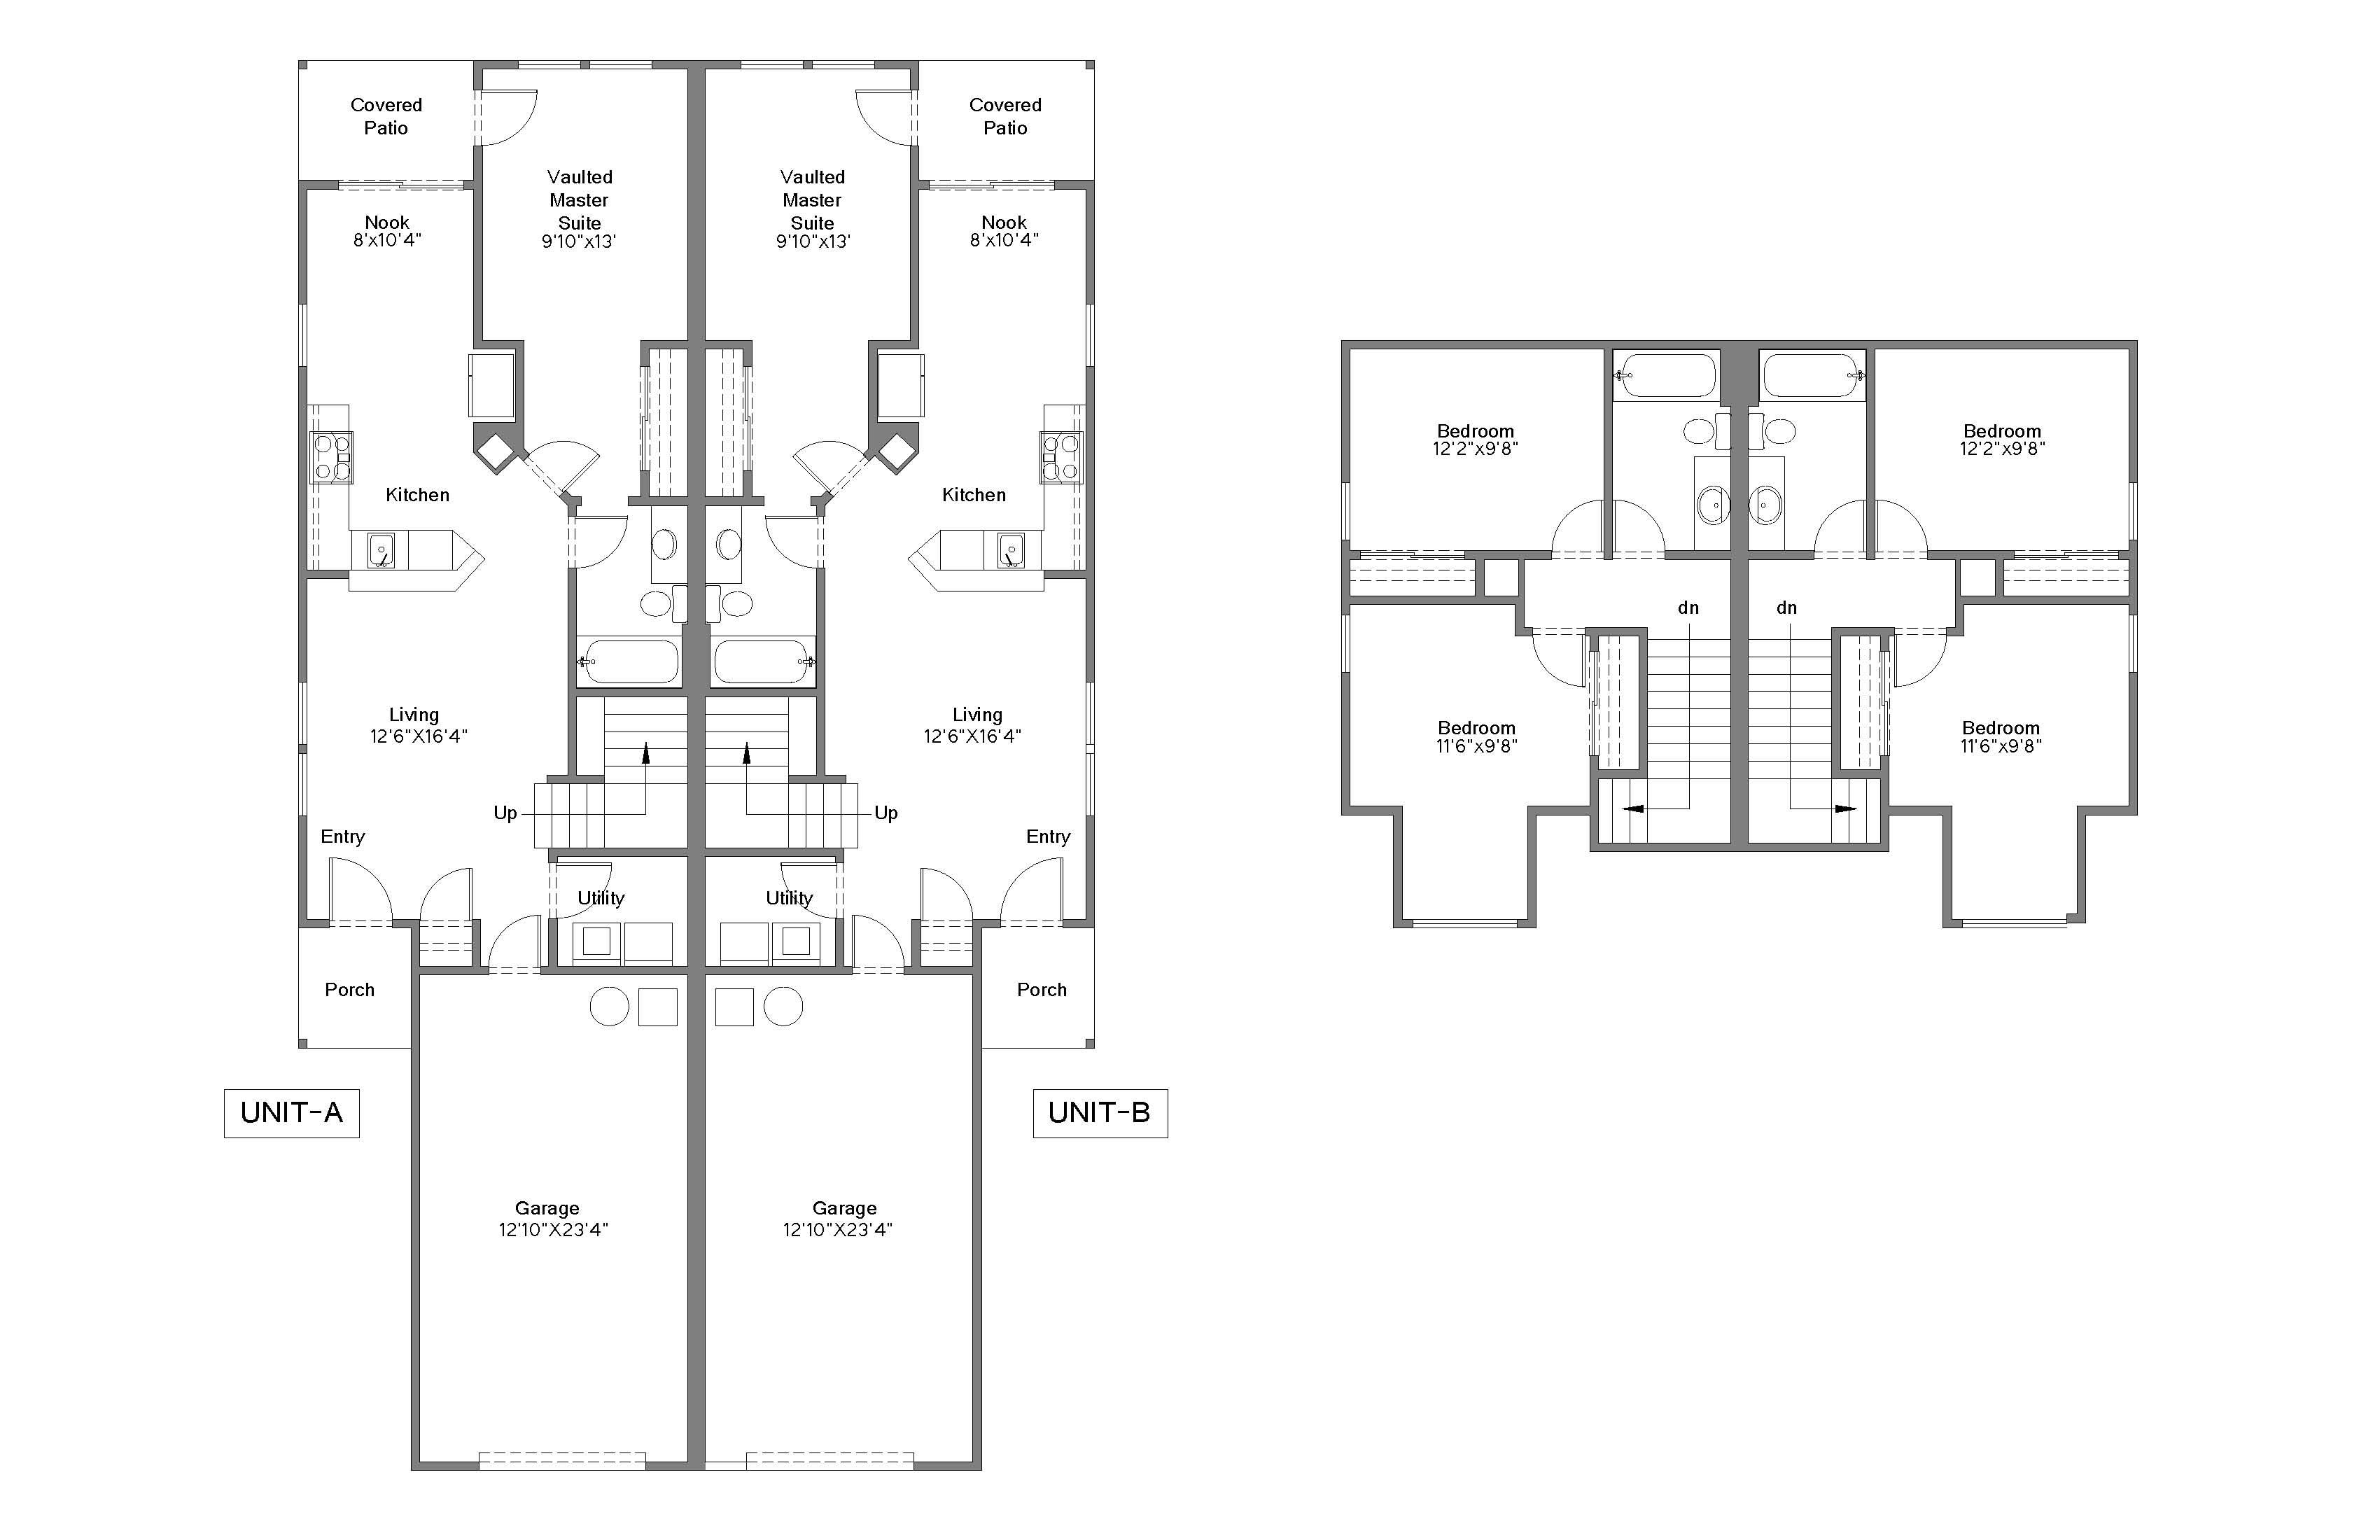 Architectural floor plan floor plan with autocad drawings Easy floor plan drawing